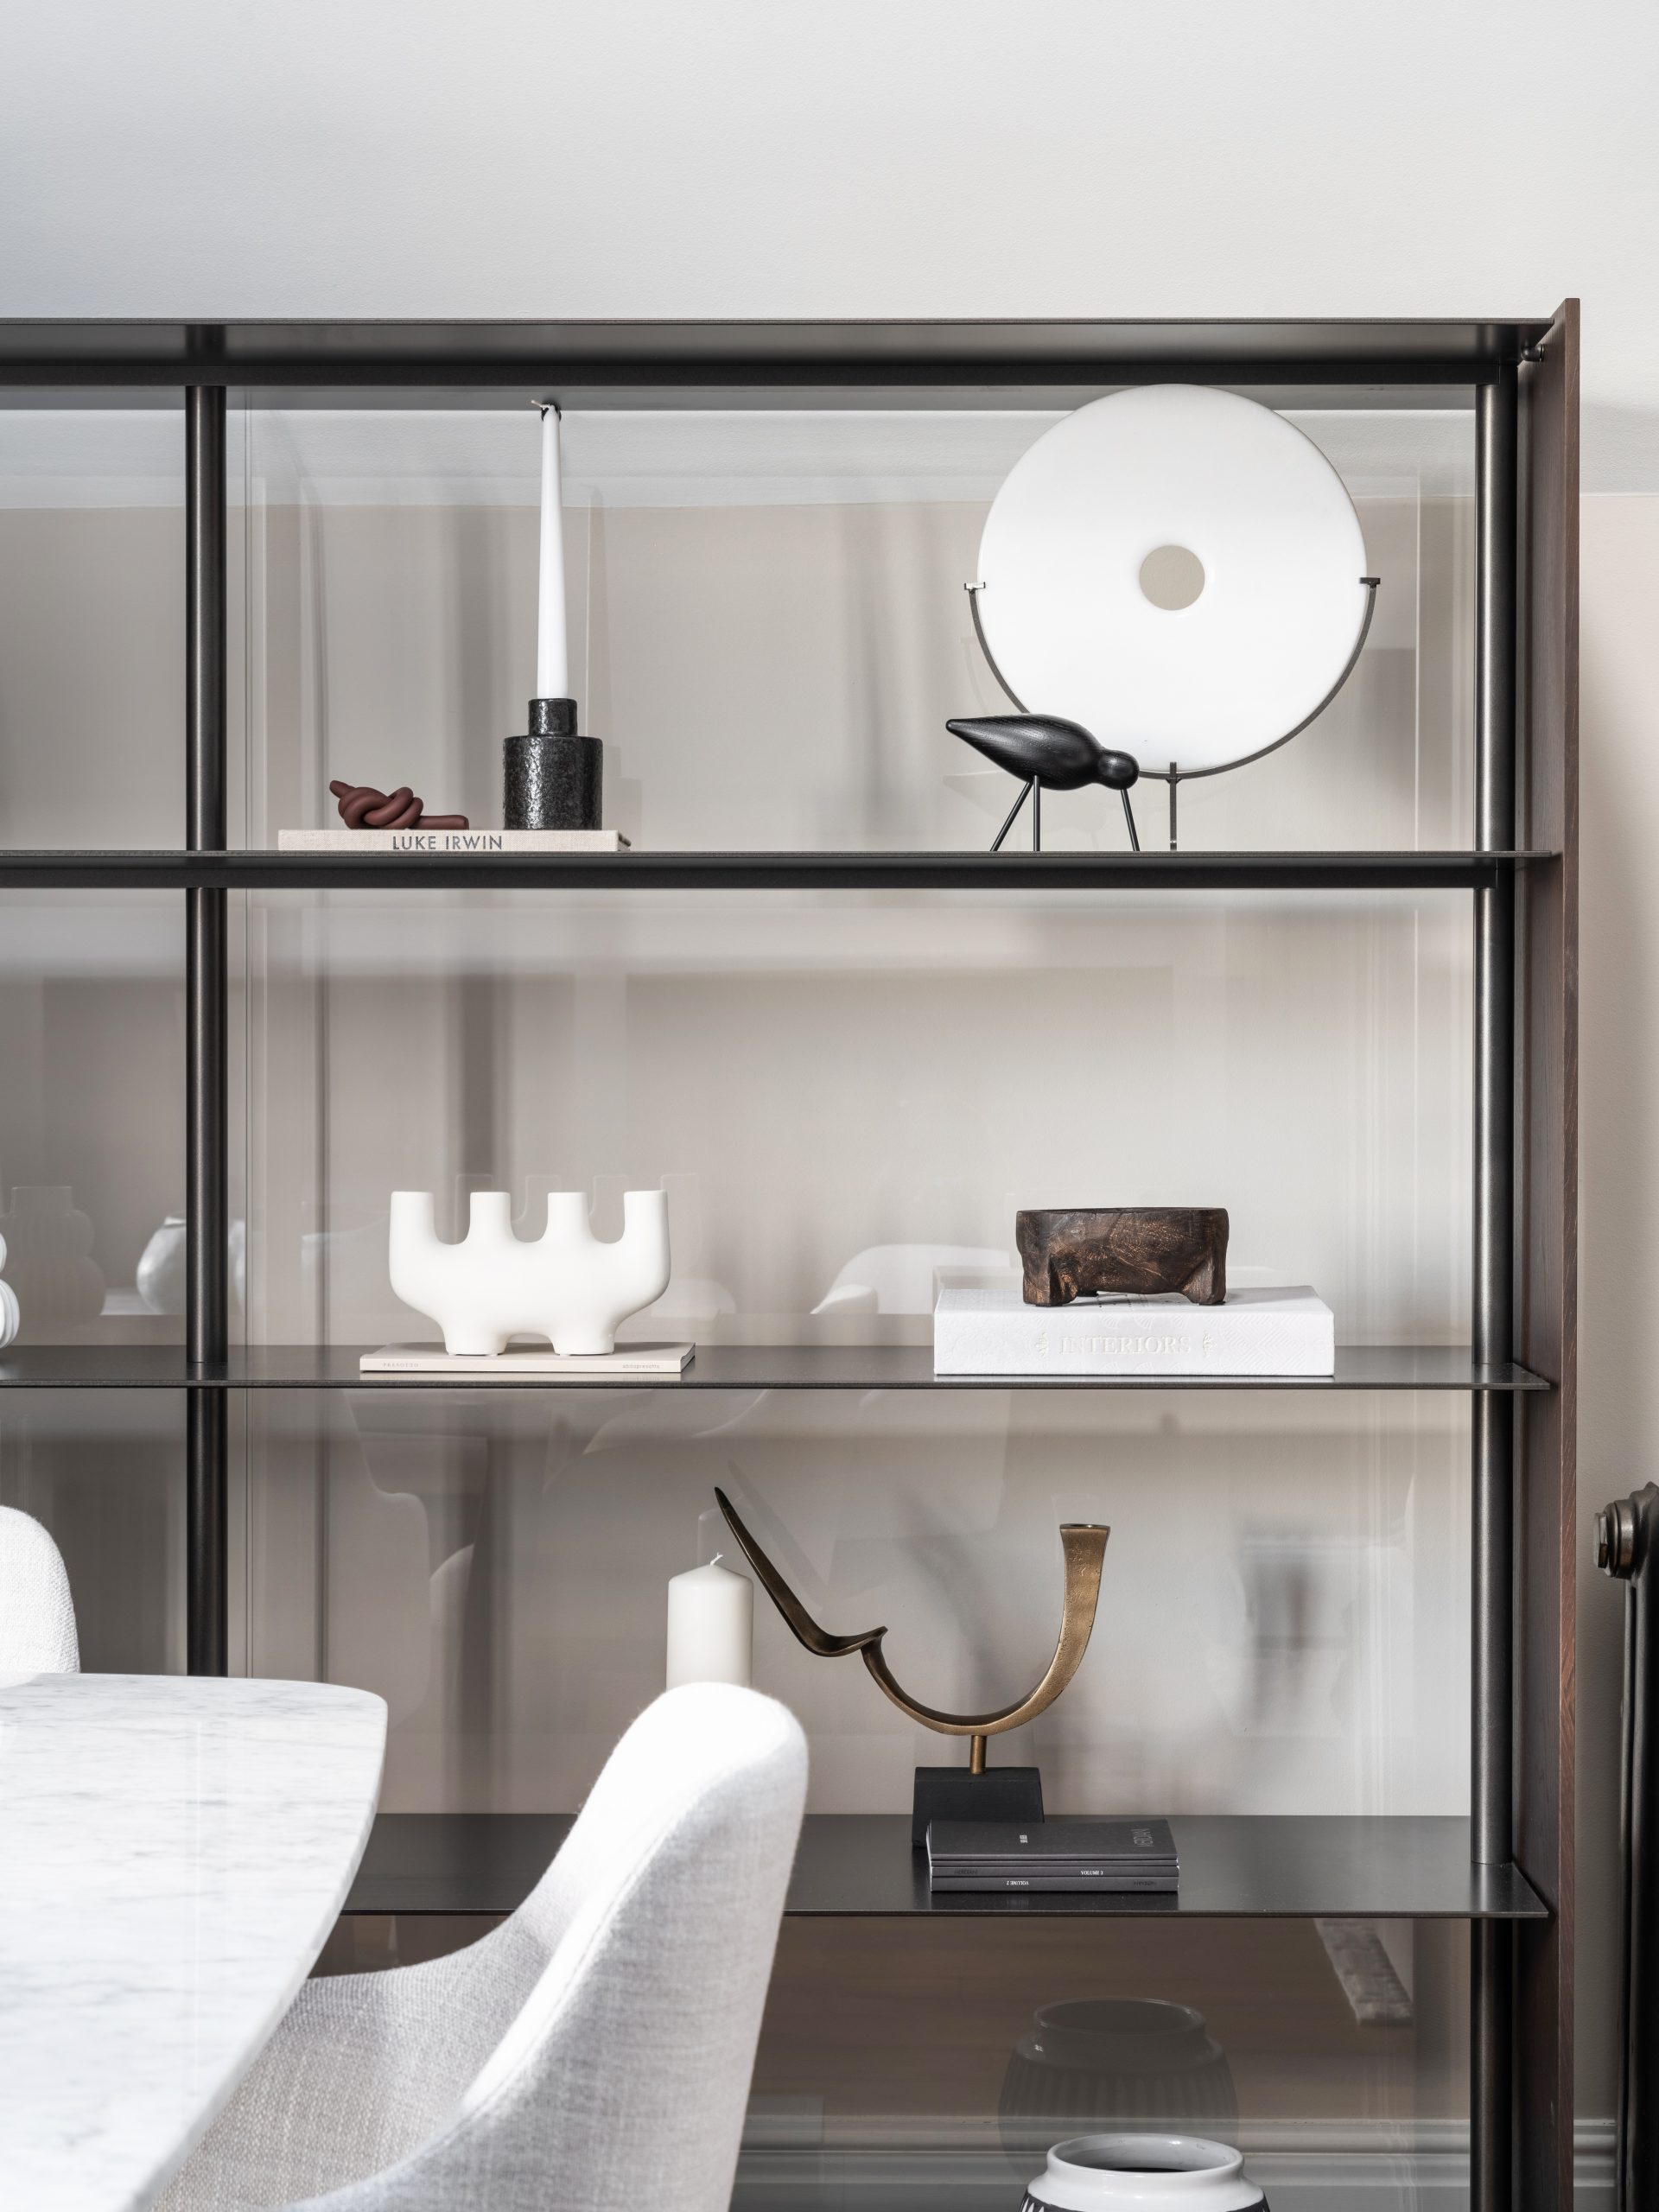 Storage shelves with ornaments and soft furnishings on, part of the NW3 Interior design services.